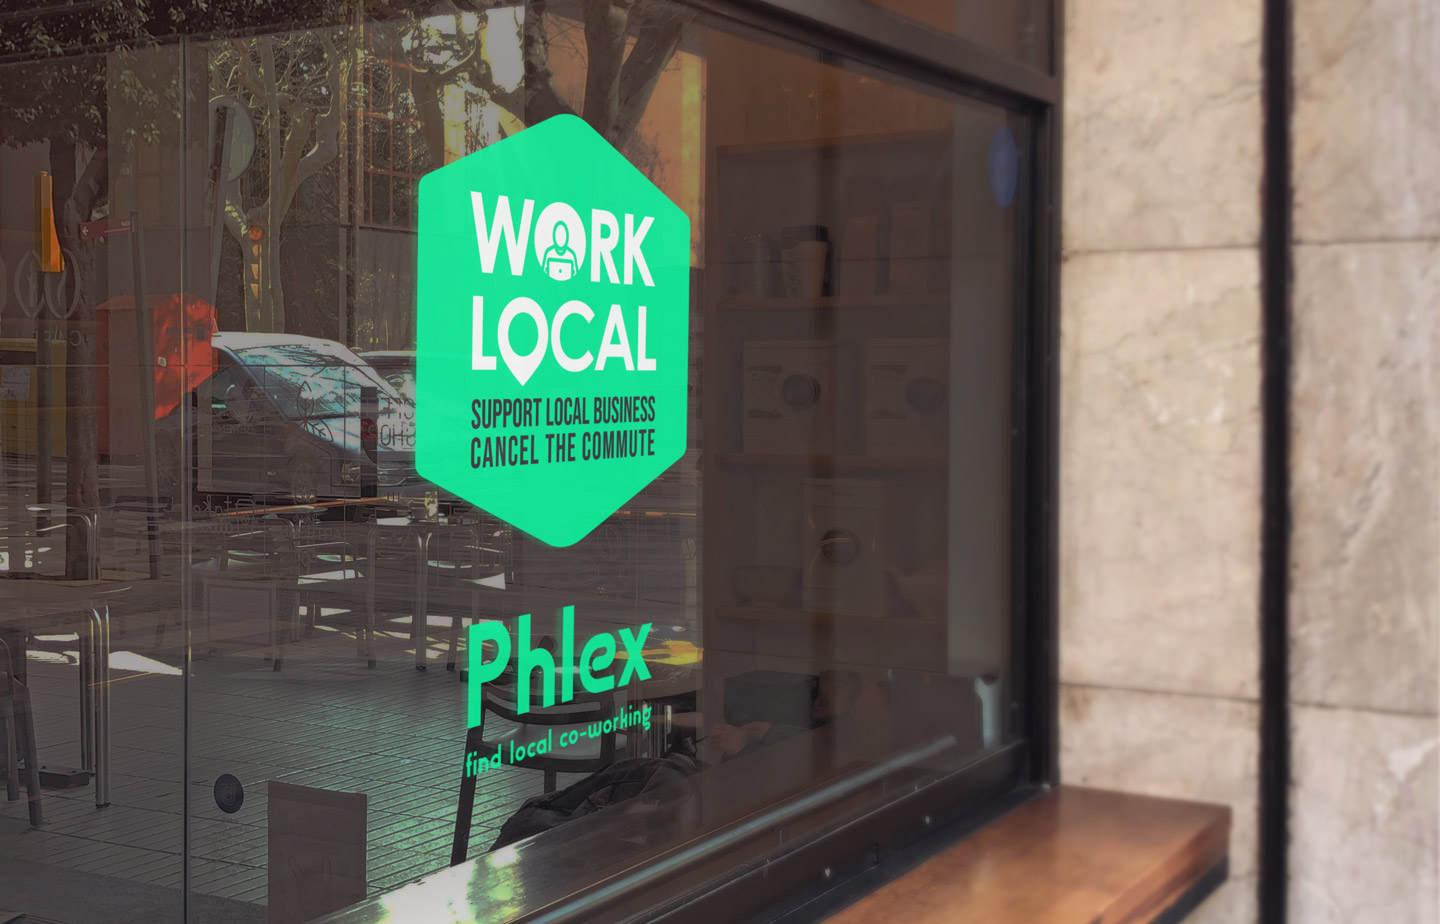 We create engaging campaigns for clients such as our 'Work local' campaign for Phlex